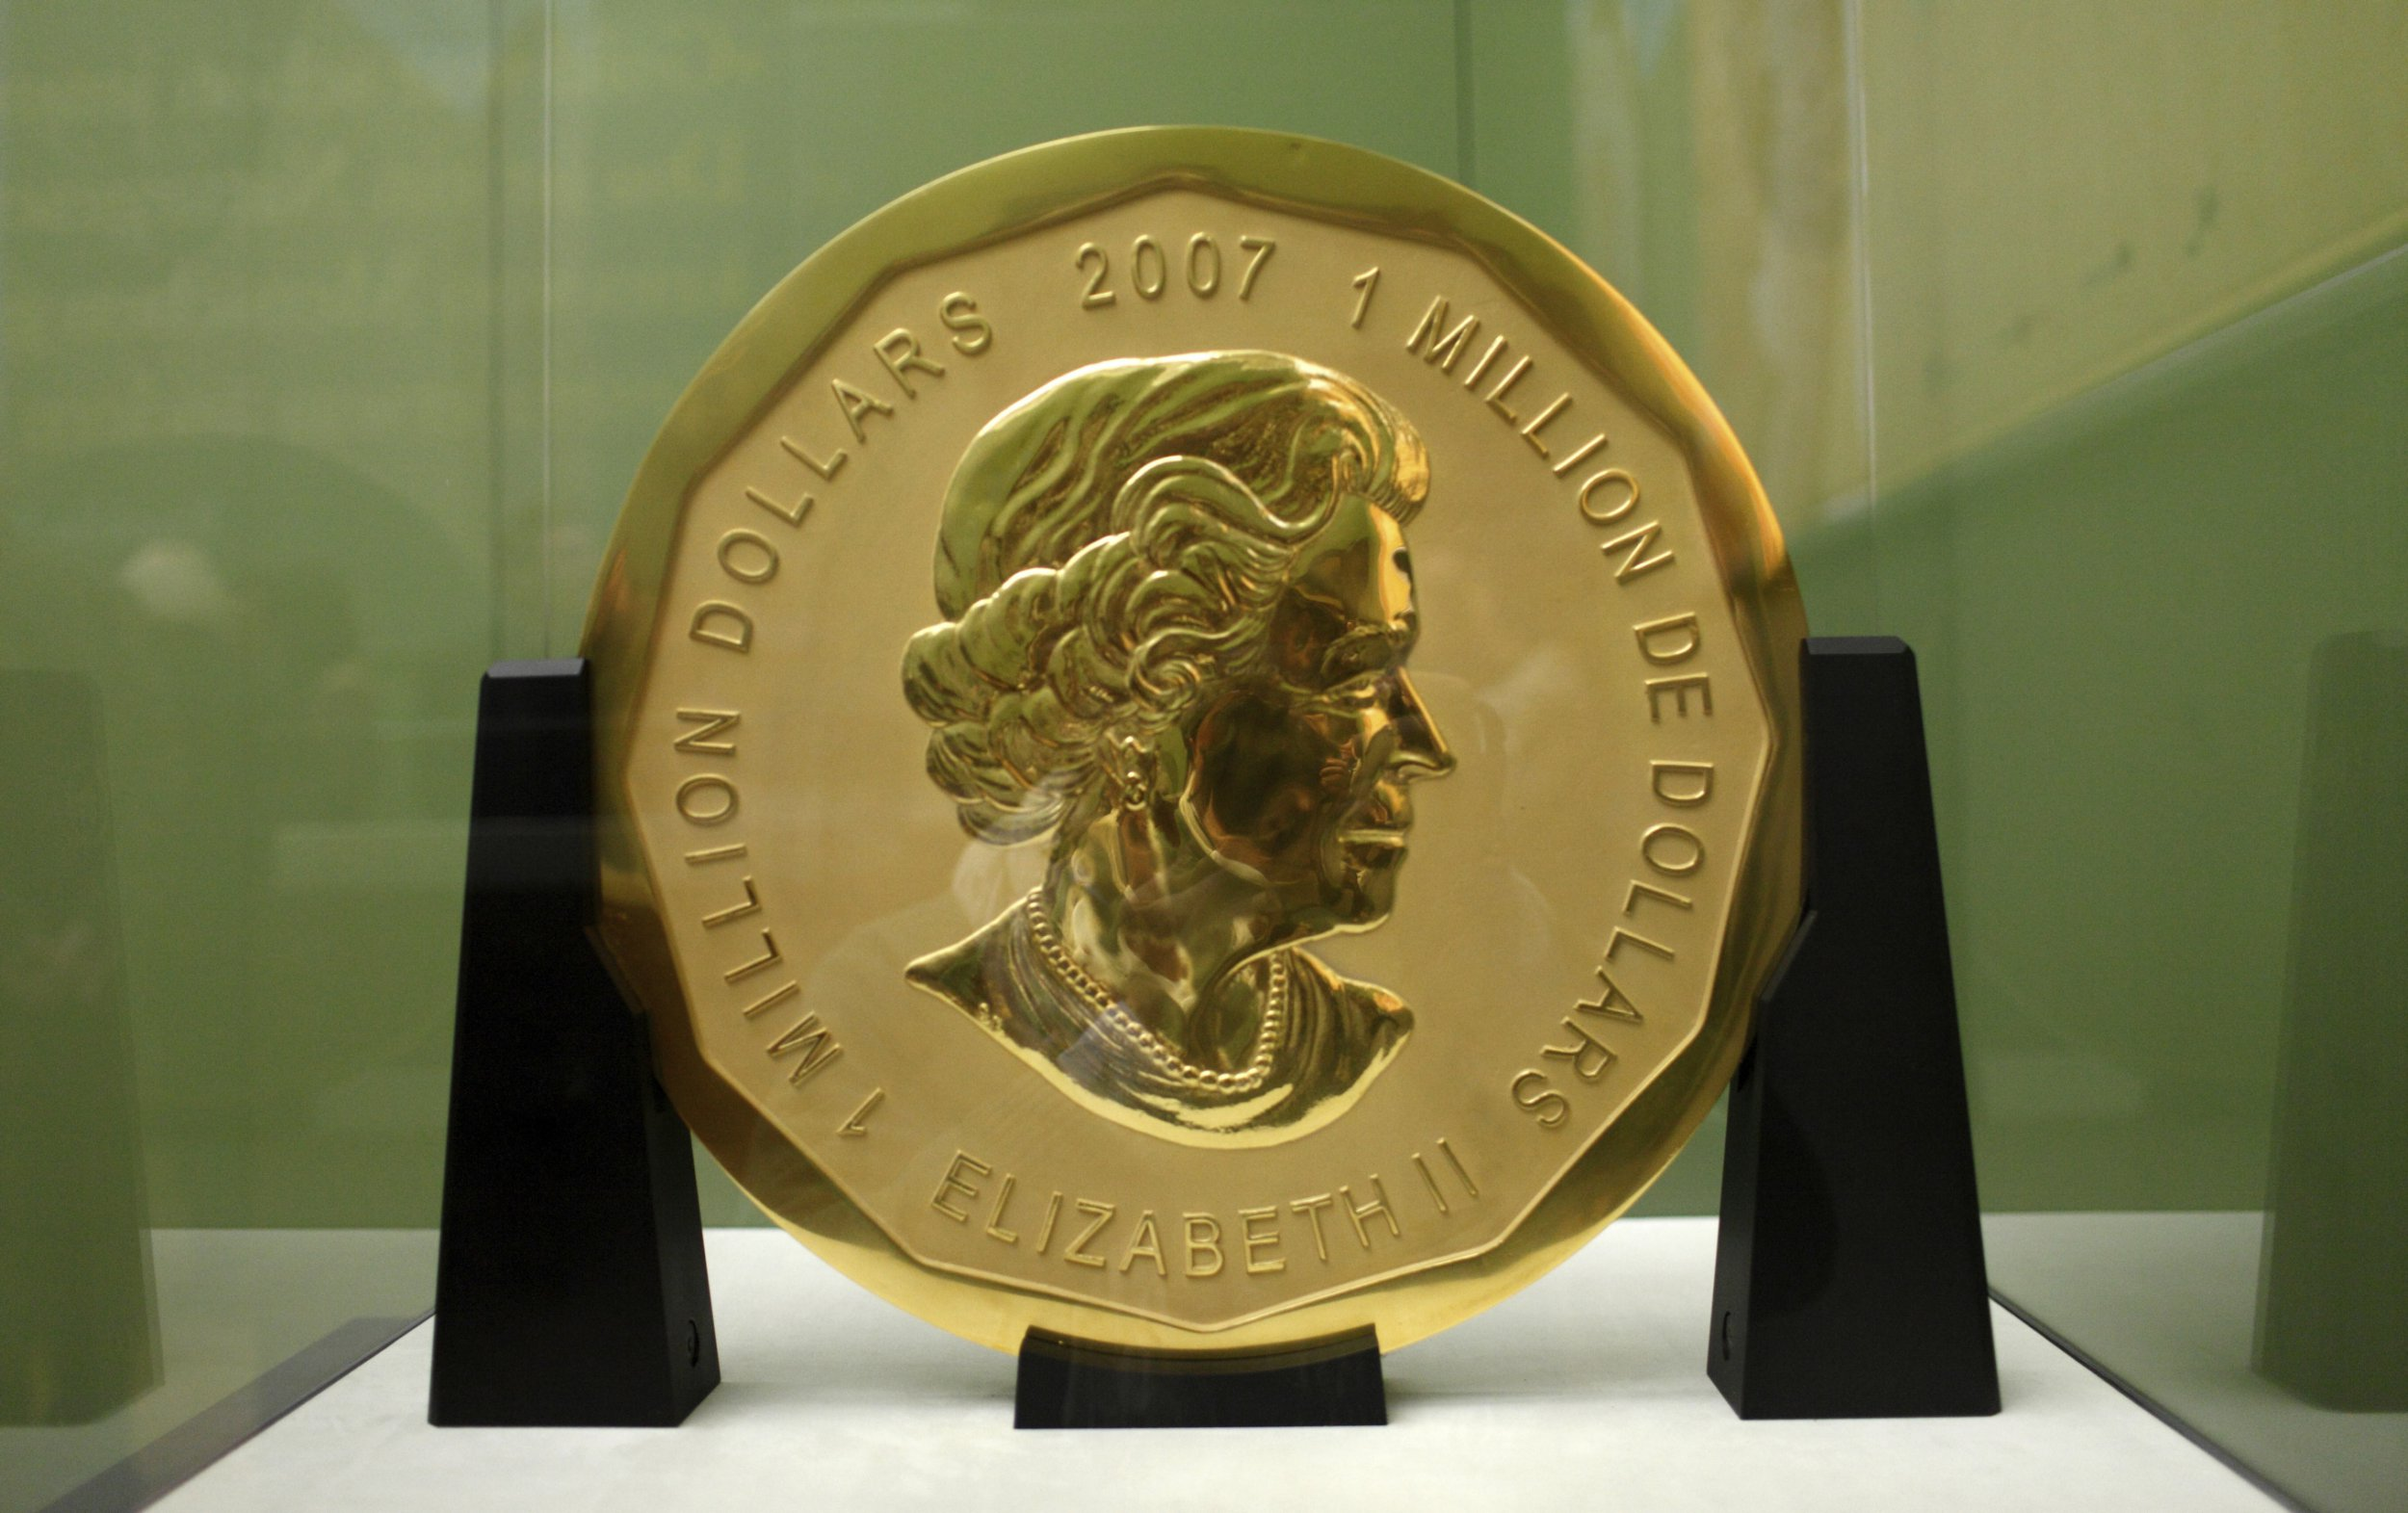 Massive 100kg gold coin worth £3.6m stolen from German museum